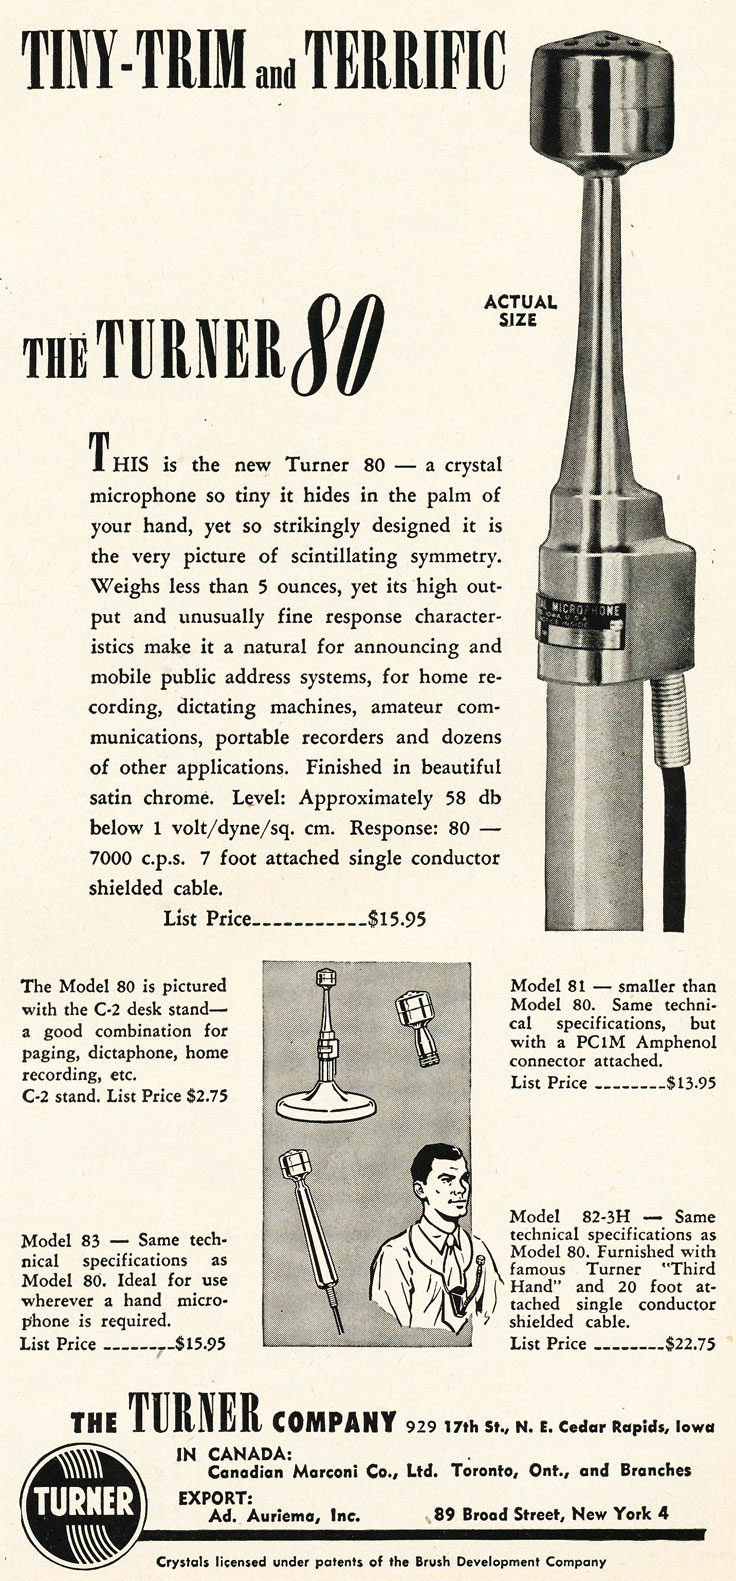 1952 ad for the Turner 80 microphone in Reel2ReelTexas.com's vintage recording collection